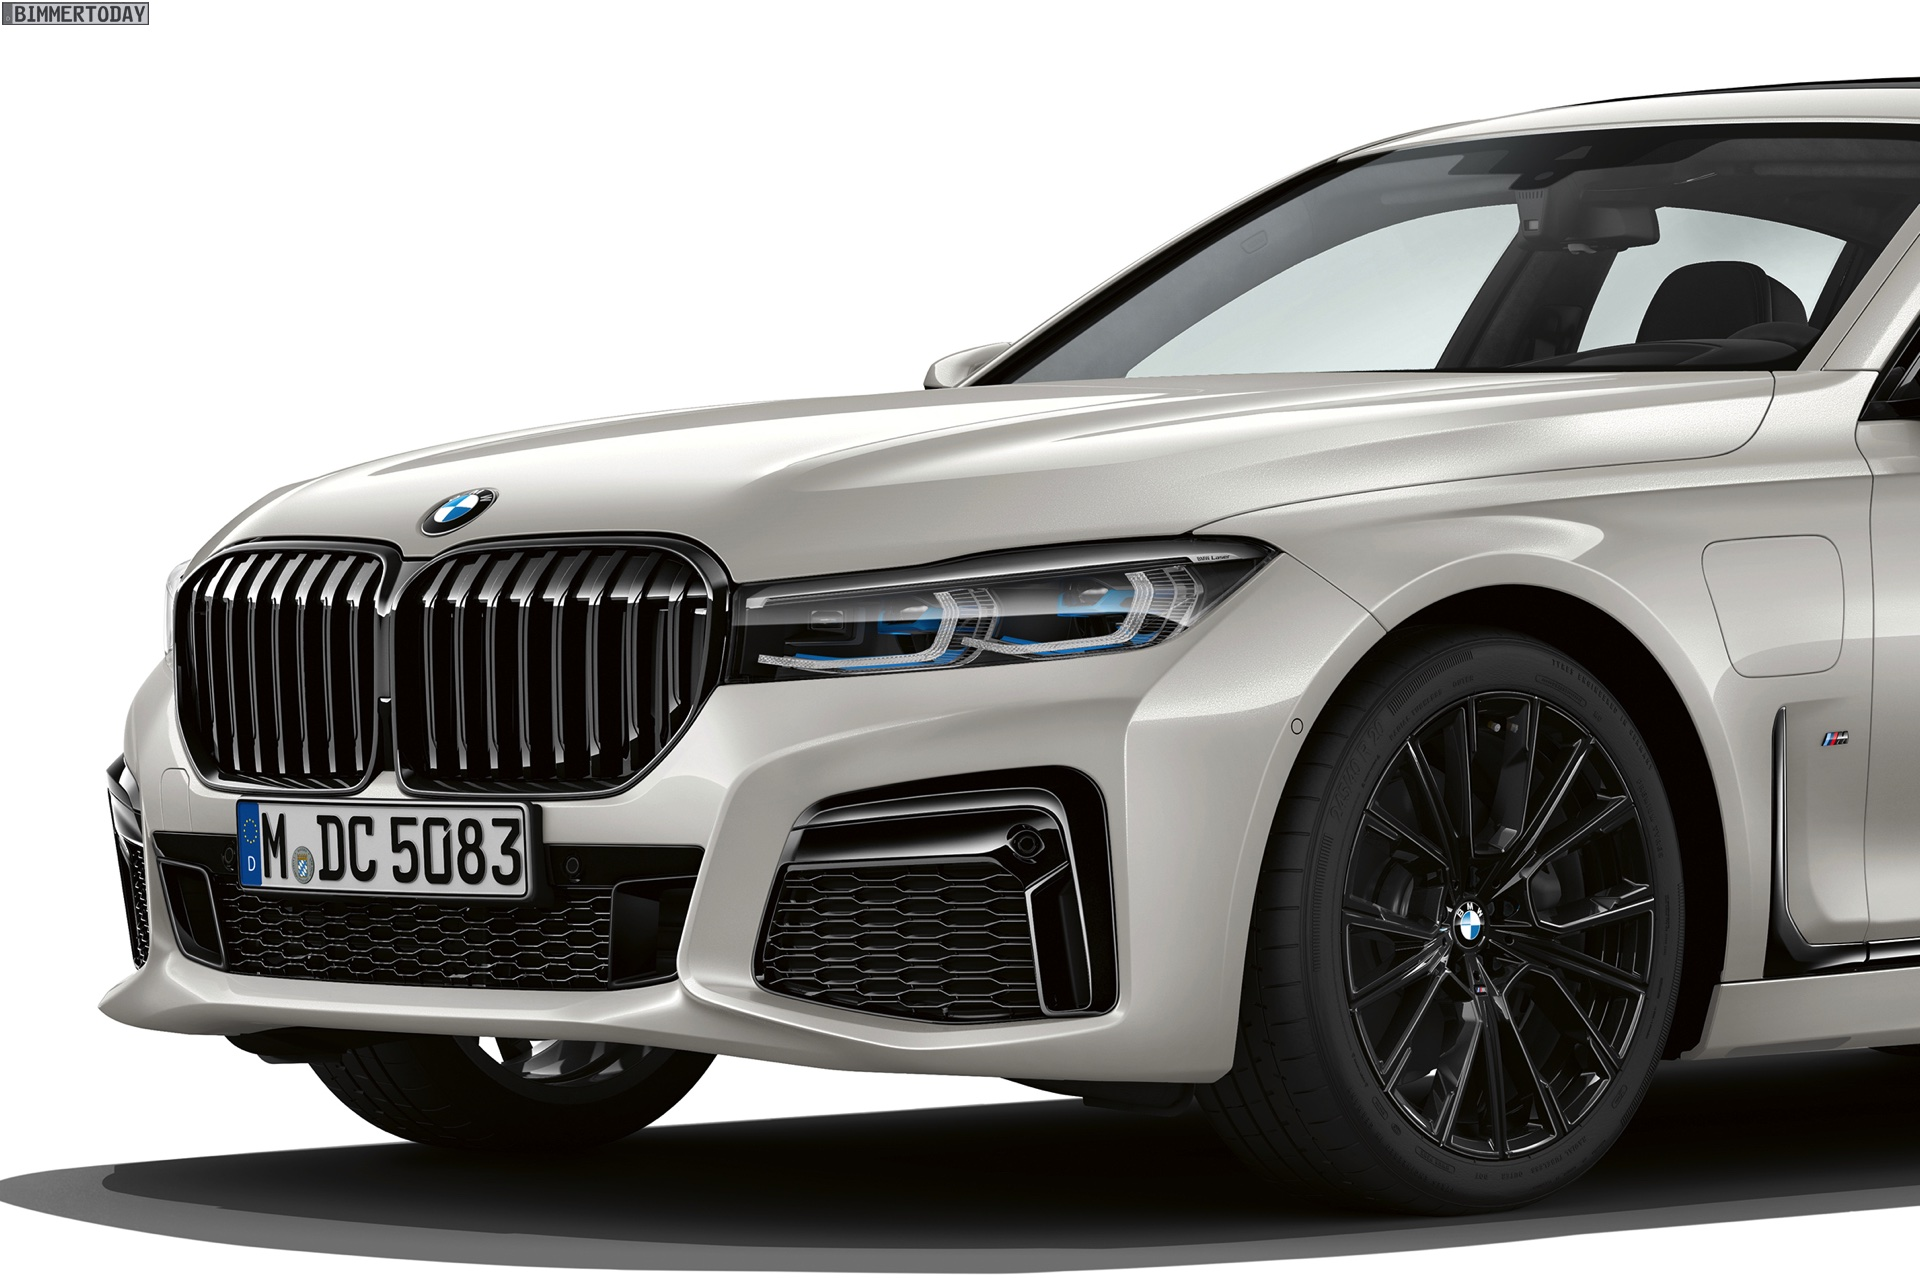 Super BMW 7er Facelift 2019: M Sport mit erweiterter Shadow Line XM-85